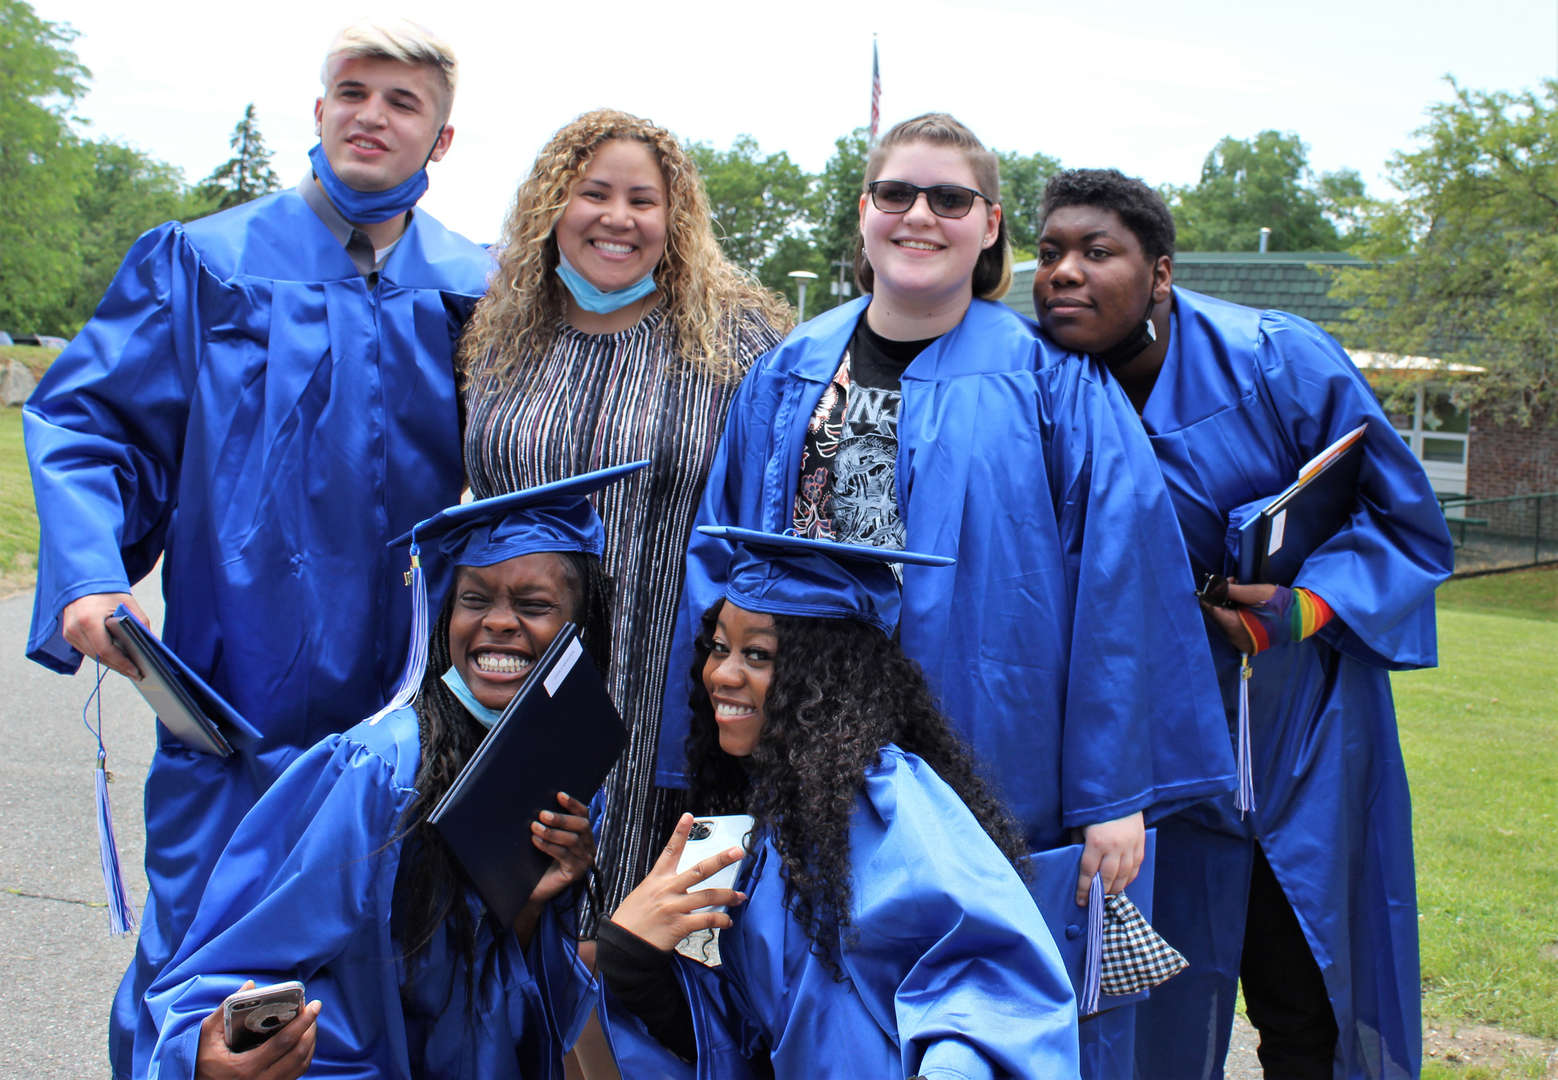 School counselor Cristina Tompkins poses for a photo with students after the graduation ceremony.